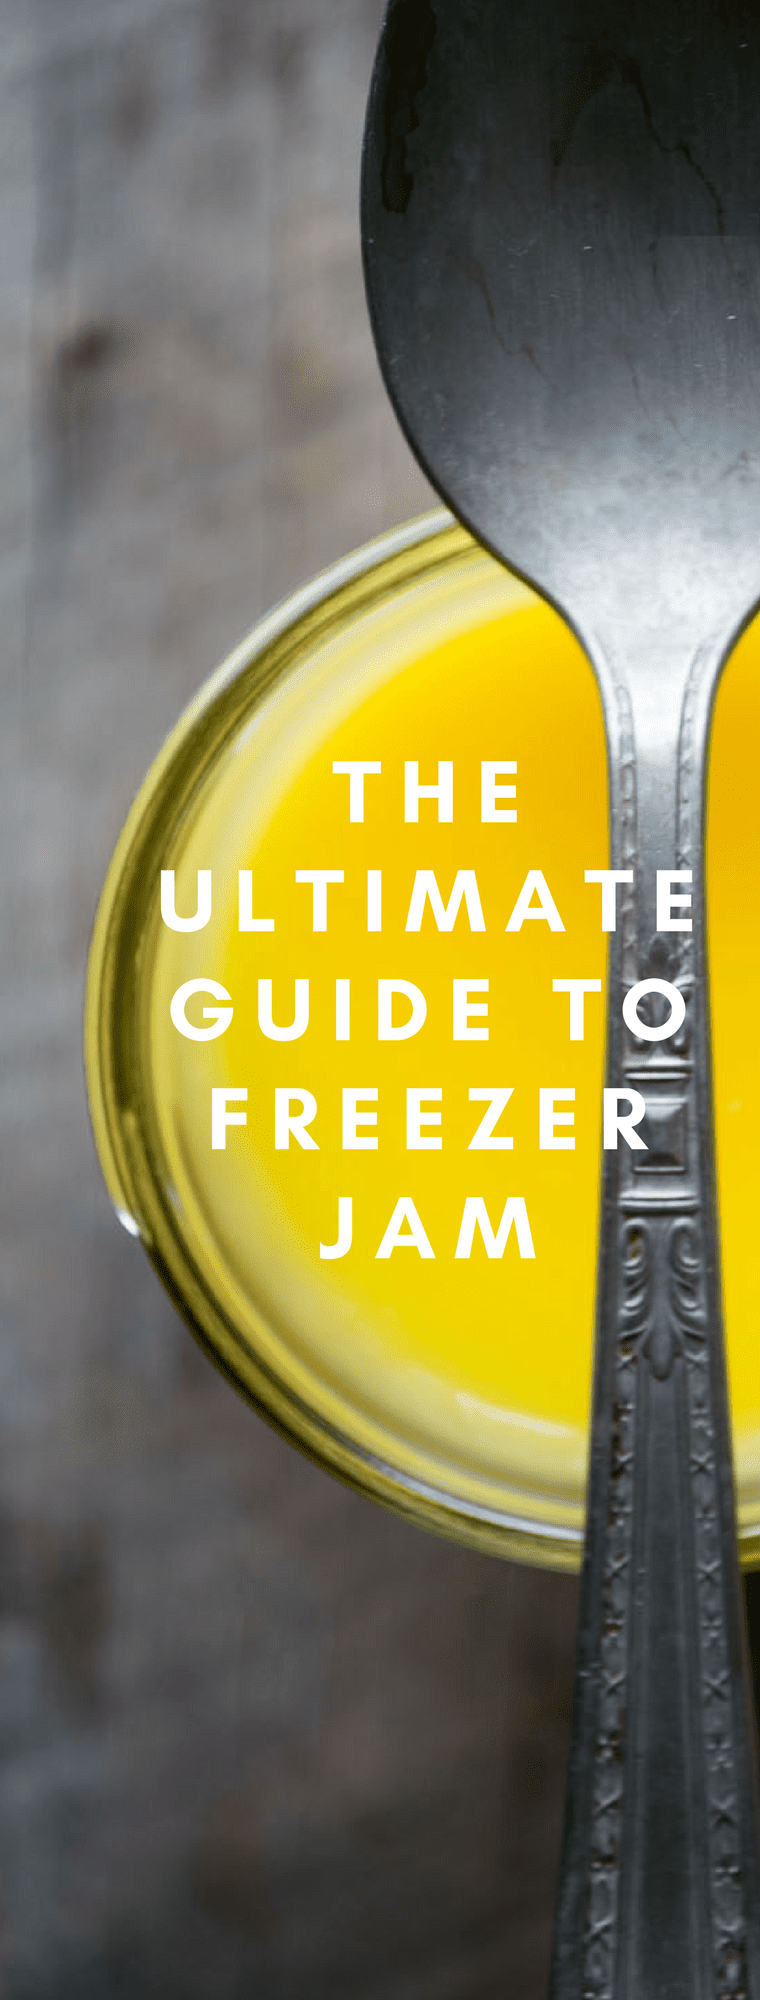 THE ULTIMATE GUIDE TO FREEZER JAM ~ everything you need to create gorgeous, healthy, vibrant jams, jellies, marmalades and curds for every season of the year ~ no canning equipment needed! #preserves #smallbatchjam #refrigeratorjam #nocanjam #canning #breakfast